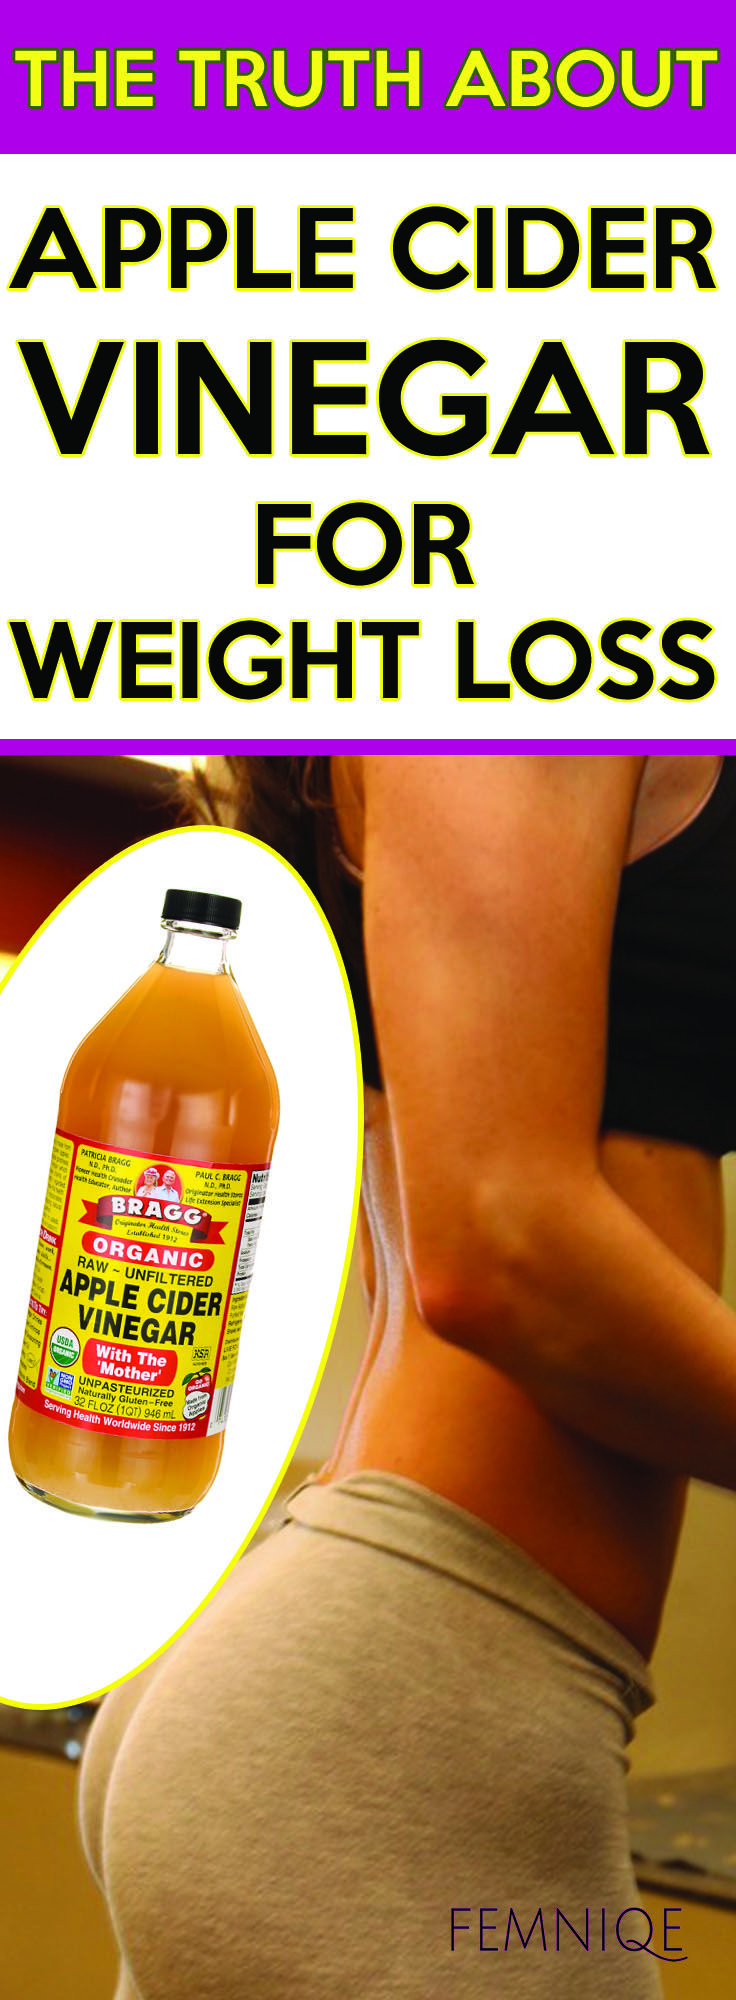 Can Apple Cider Vinegar Help You Lose Weight | Health ...